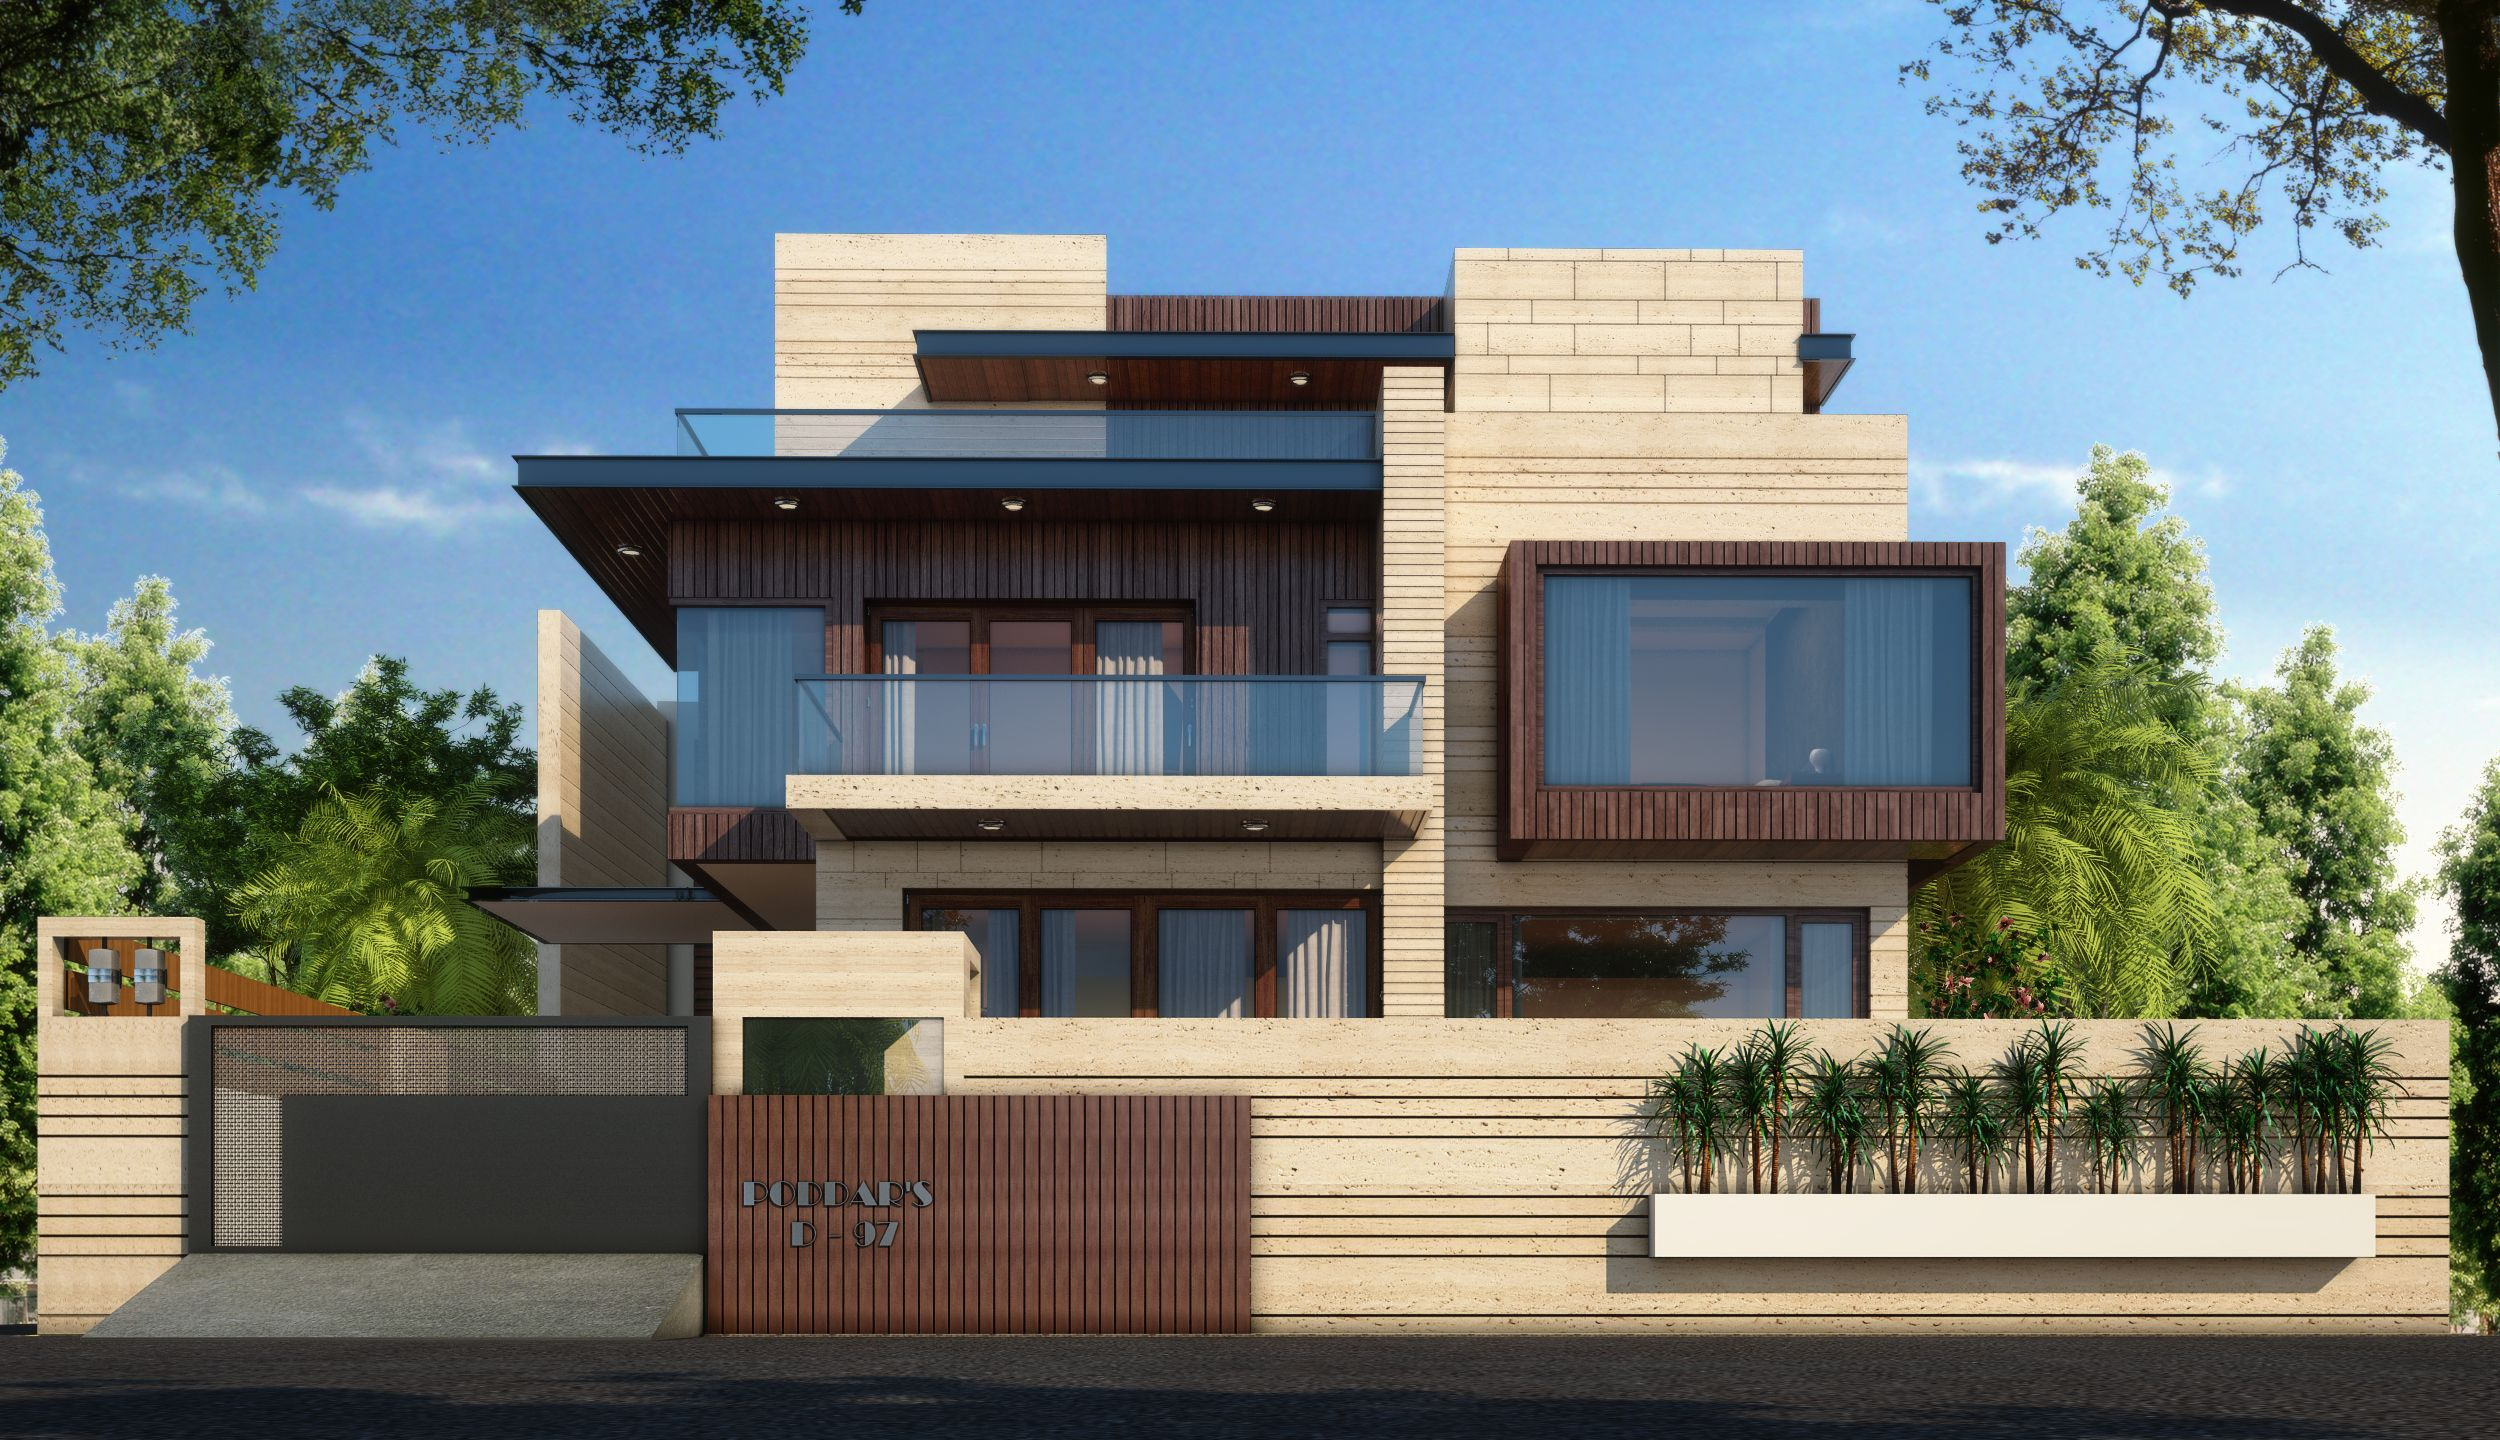 Hausfrontdesign in rajasthan house boundary wall design  dream house  pinterest  contemporary